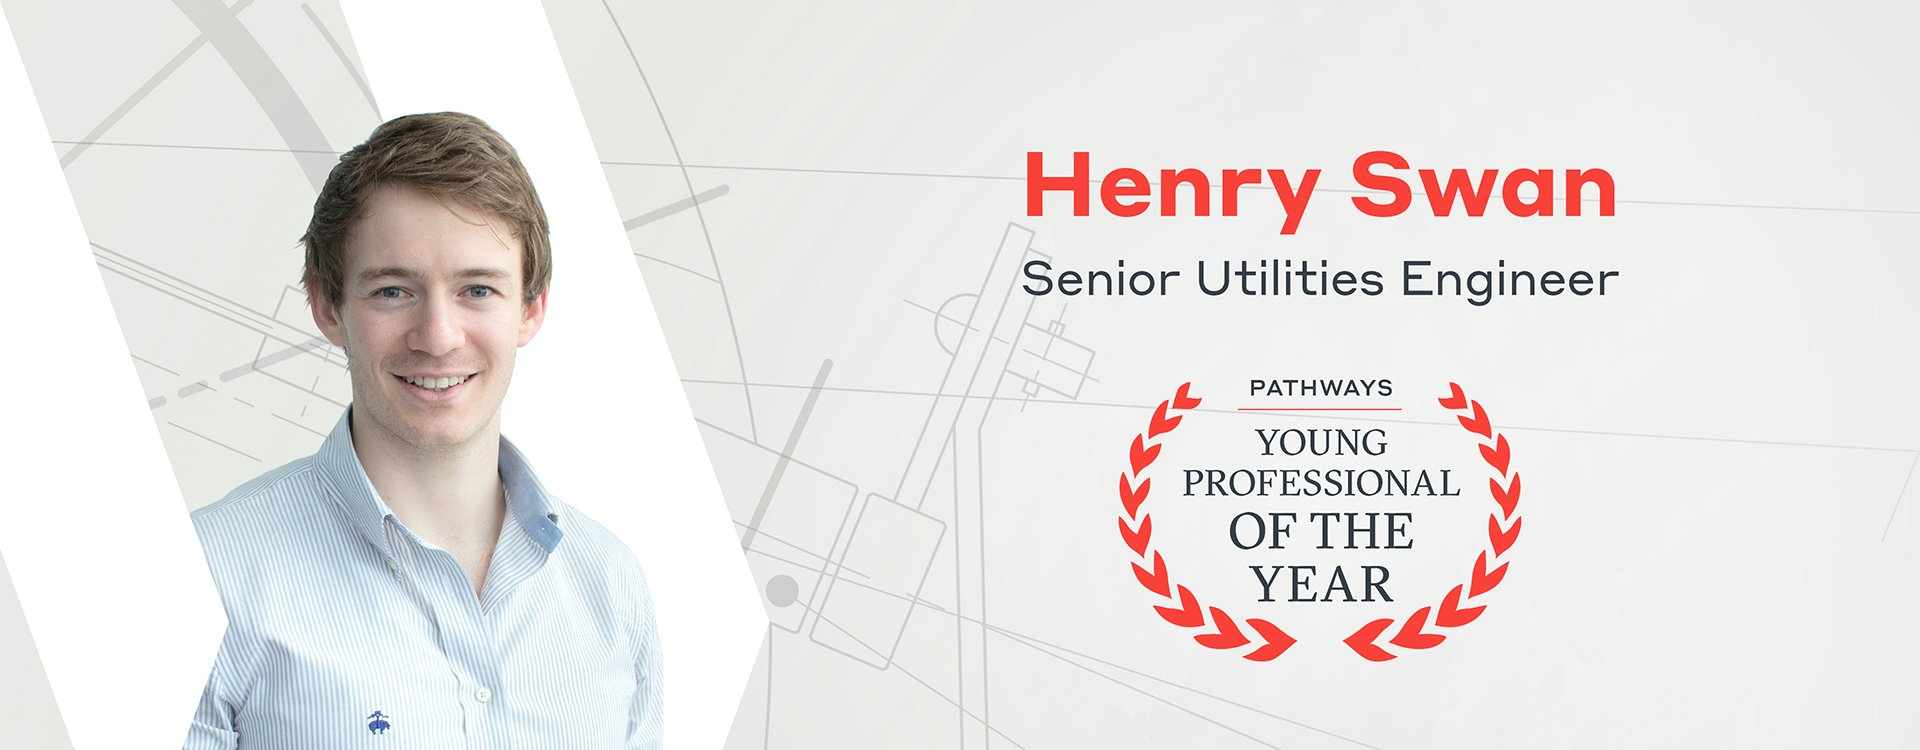 bnr-henry-swan-young-professional-of-the-year